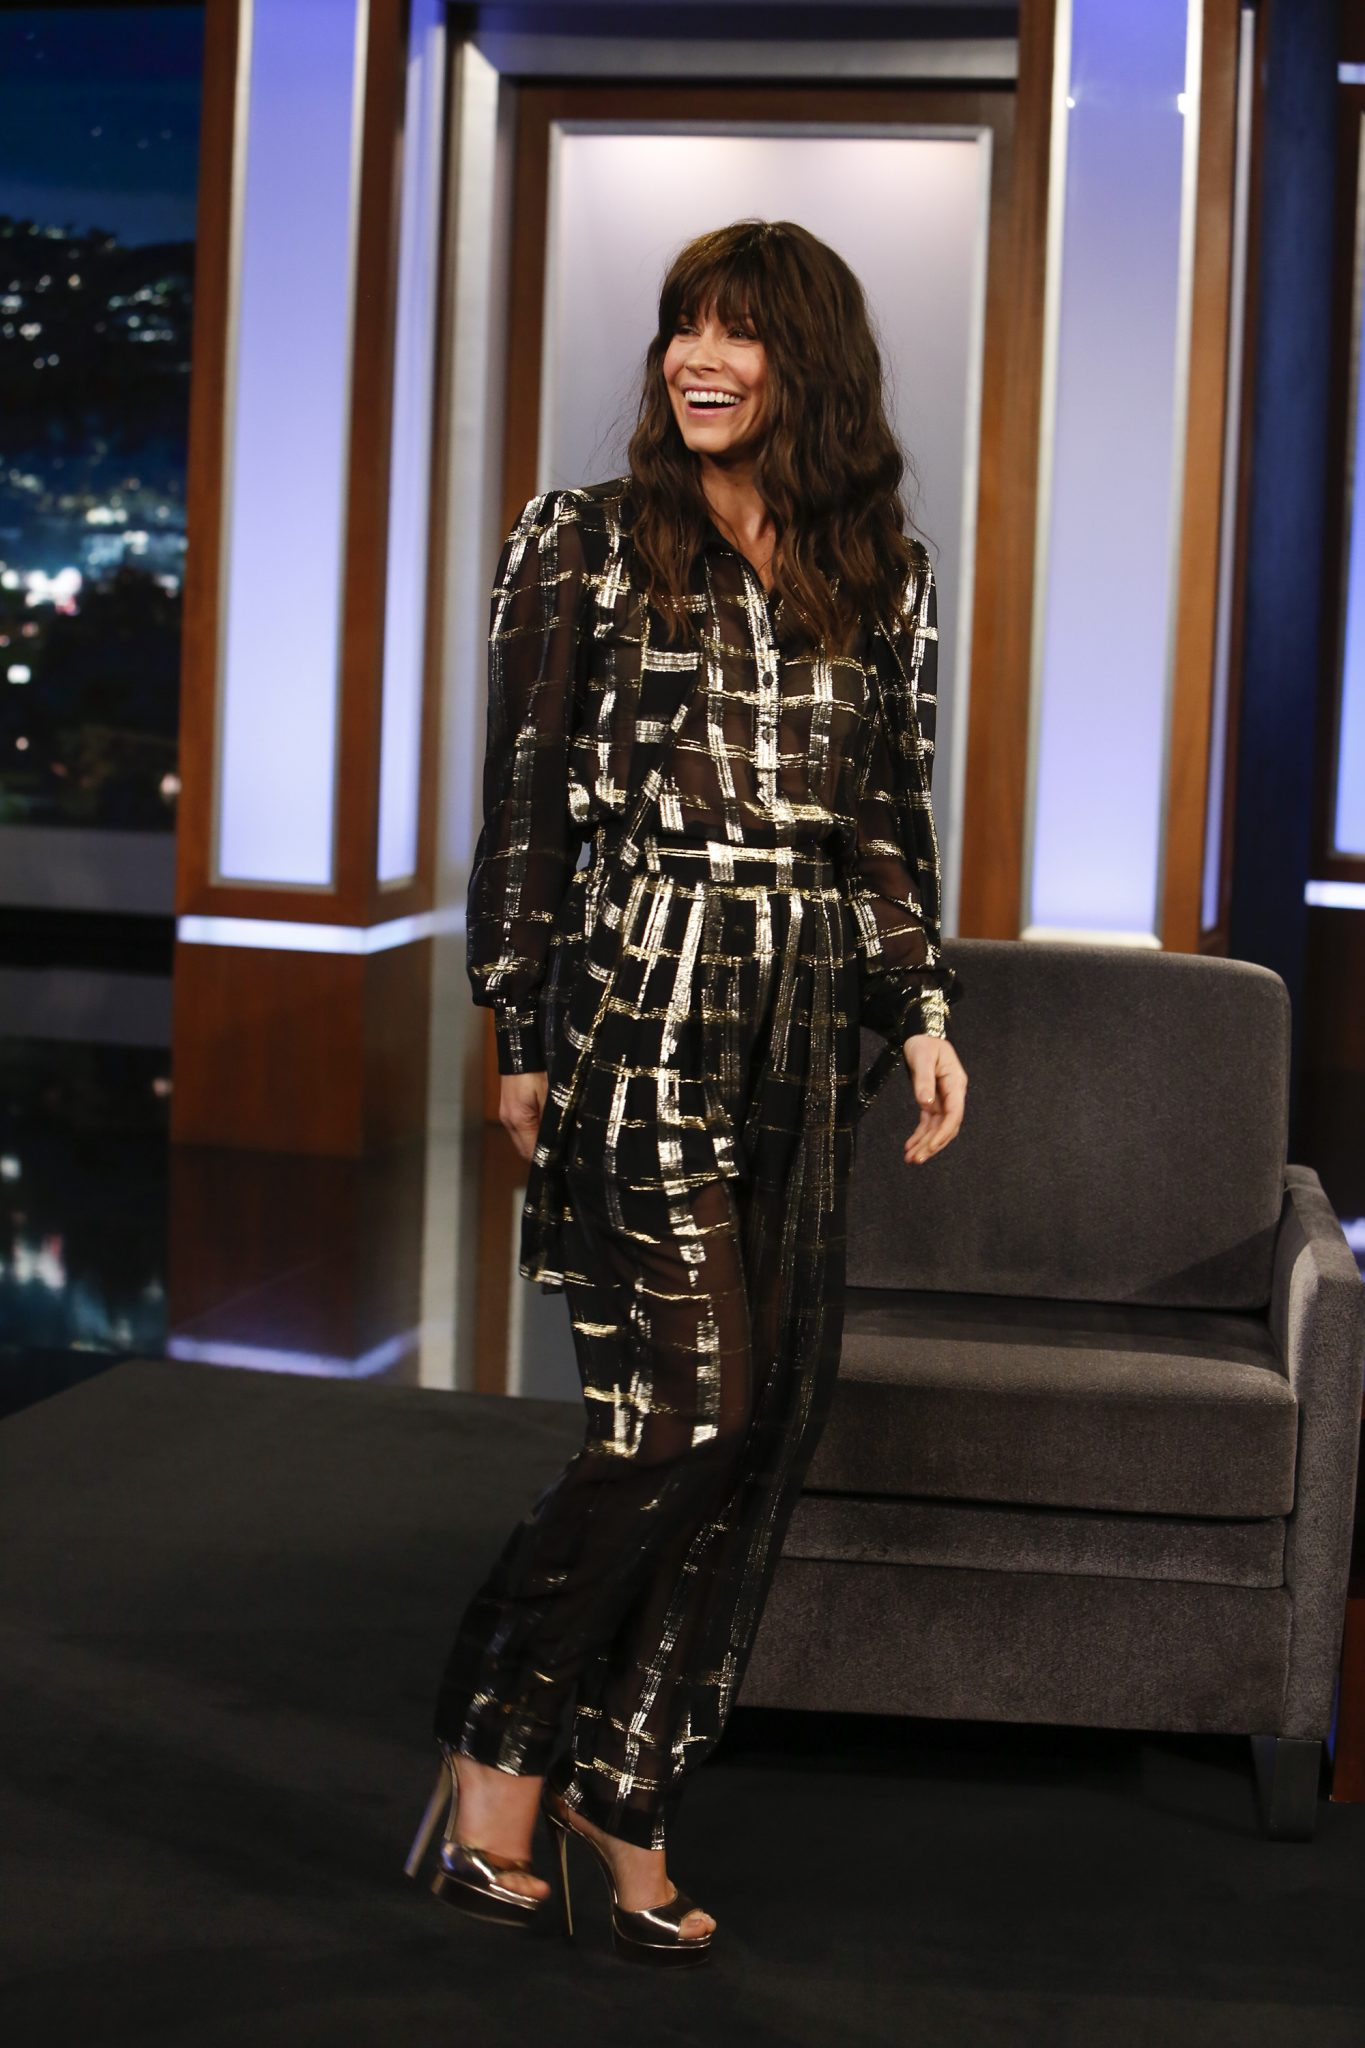 In Case You Missed It: Evangeline Lilly On Jimmy Kimmel Live